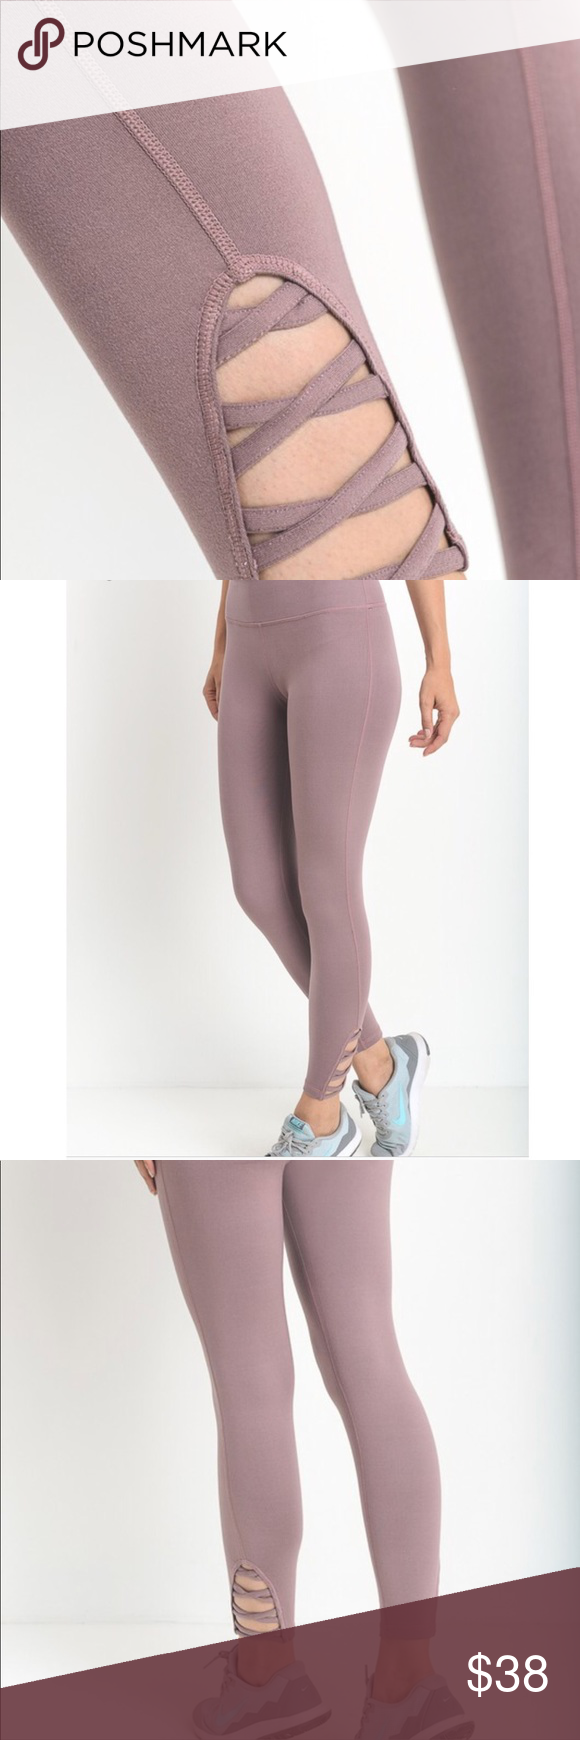 Quinn Criss Cross Legging - Mauve • PRICE DROPPED • These are one of the comfiest leggings I've ever worn.  Loved them so much I decided to bring them in.  Available in Black, Mauve, & Teal Blue.  Modeling size M.  Wearing with my Poppy Active Tank & Emerson Velour Hoodie.  Price firm▪️10% off 2+ items▪️ Pants Leggings